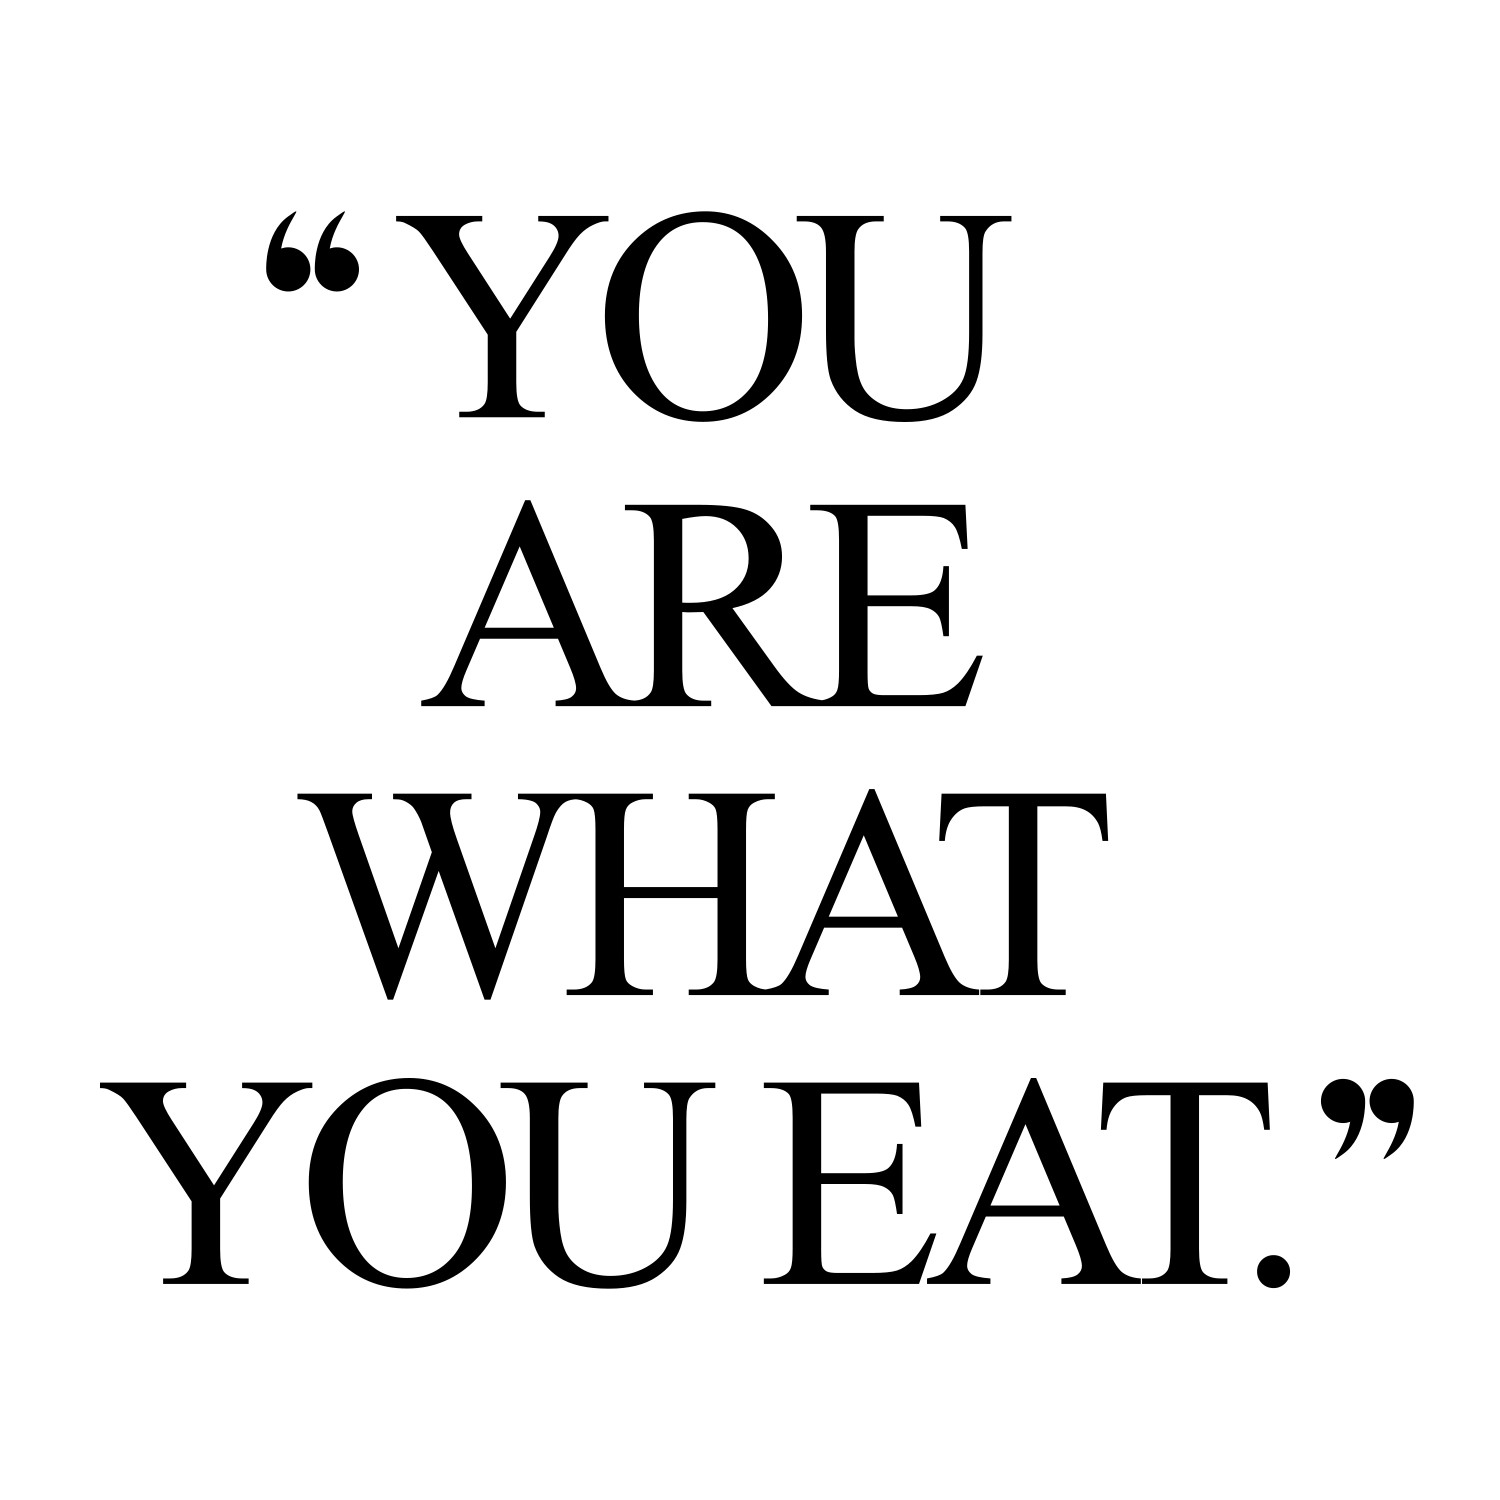 Eat healthy be healthy! Browse our collection of motivational health and fitness quotes and get instant training inspiration. Transform positive thoughts into positive actions and get fit, healthy and happy! https://www.spotebi.com/workout-motivation/eat-healthy-be-healthy-motivational-health-and-fitness-quote/